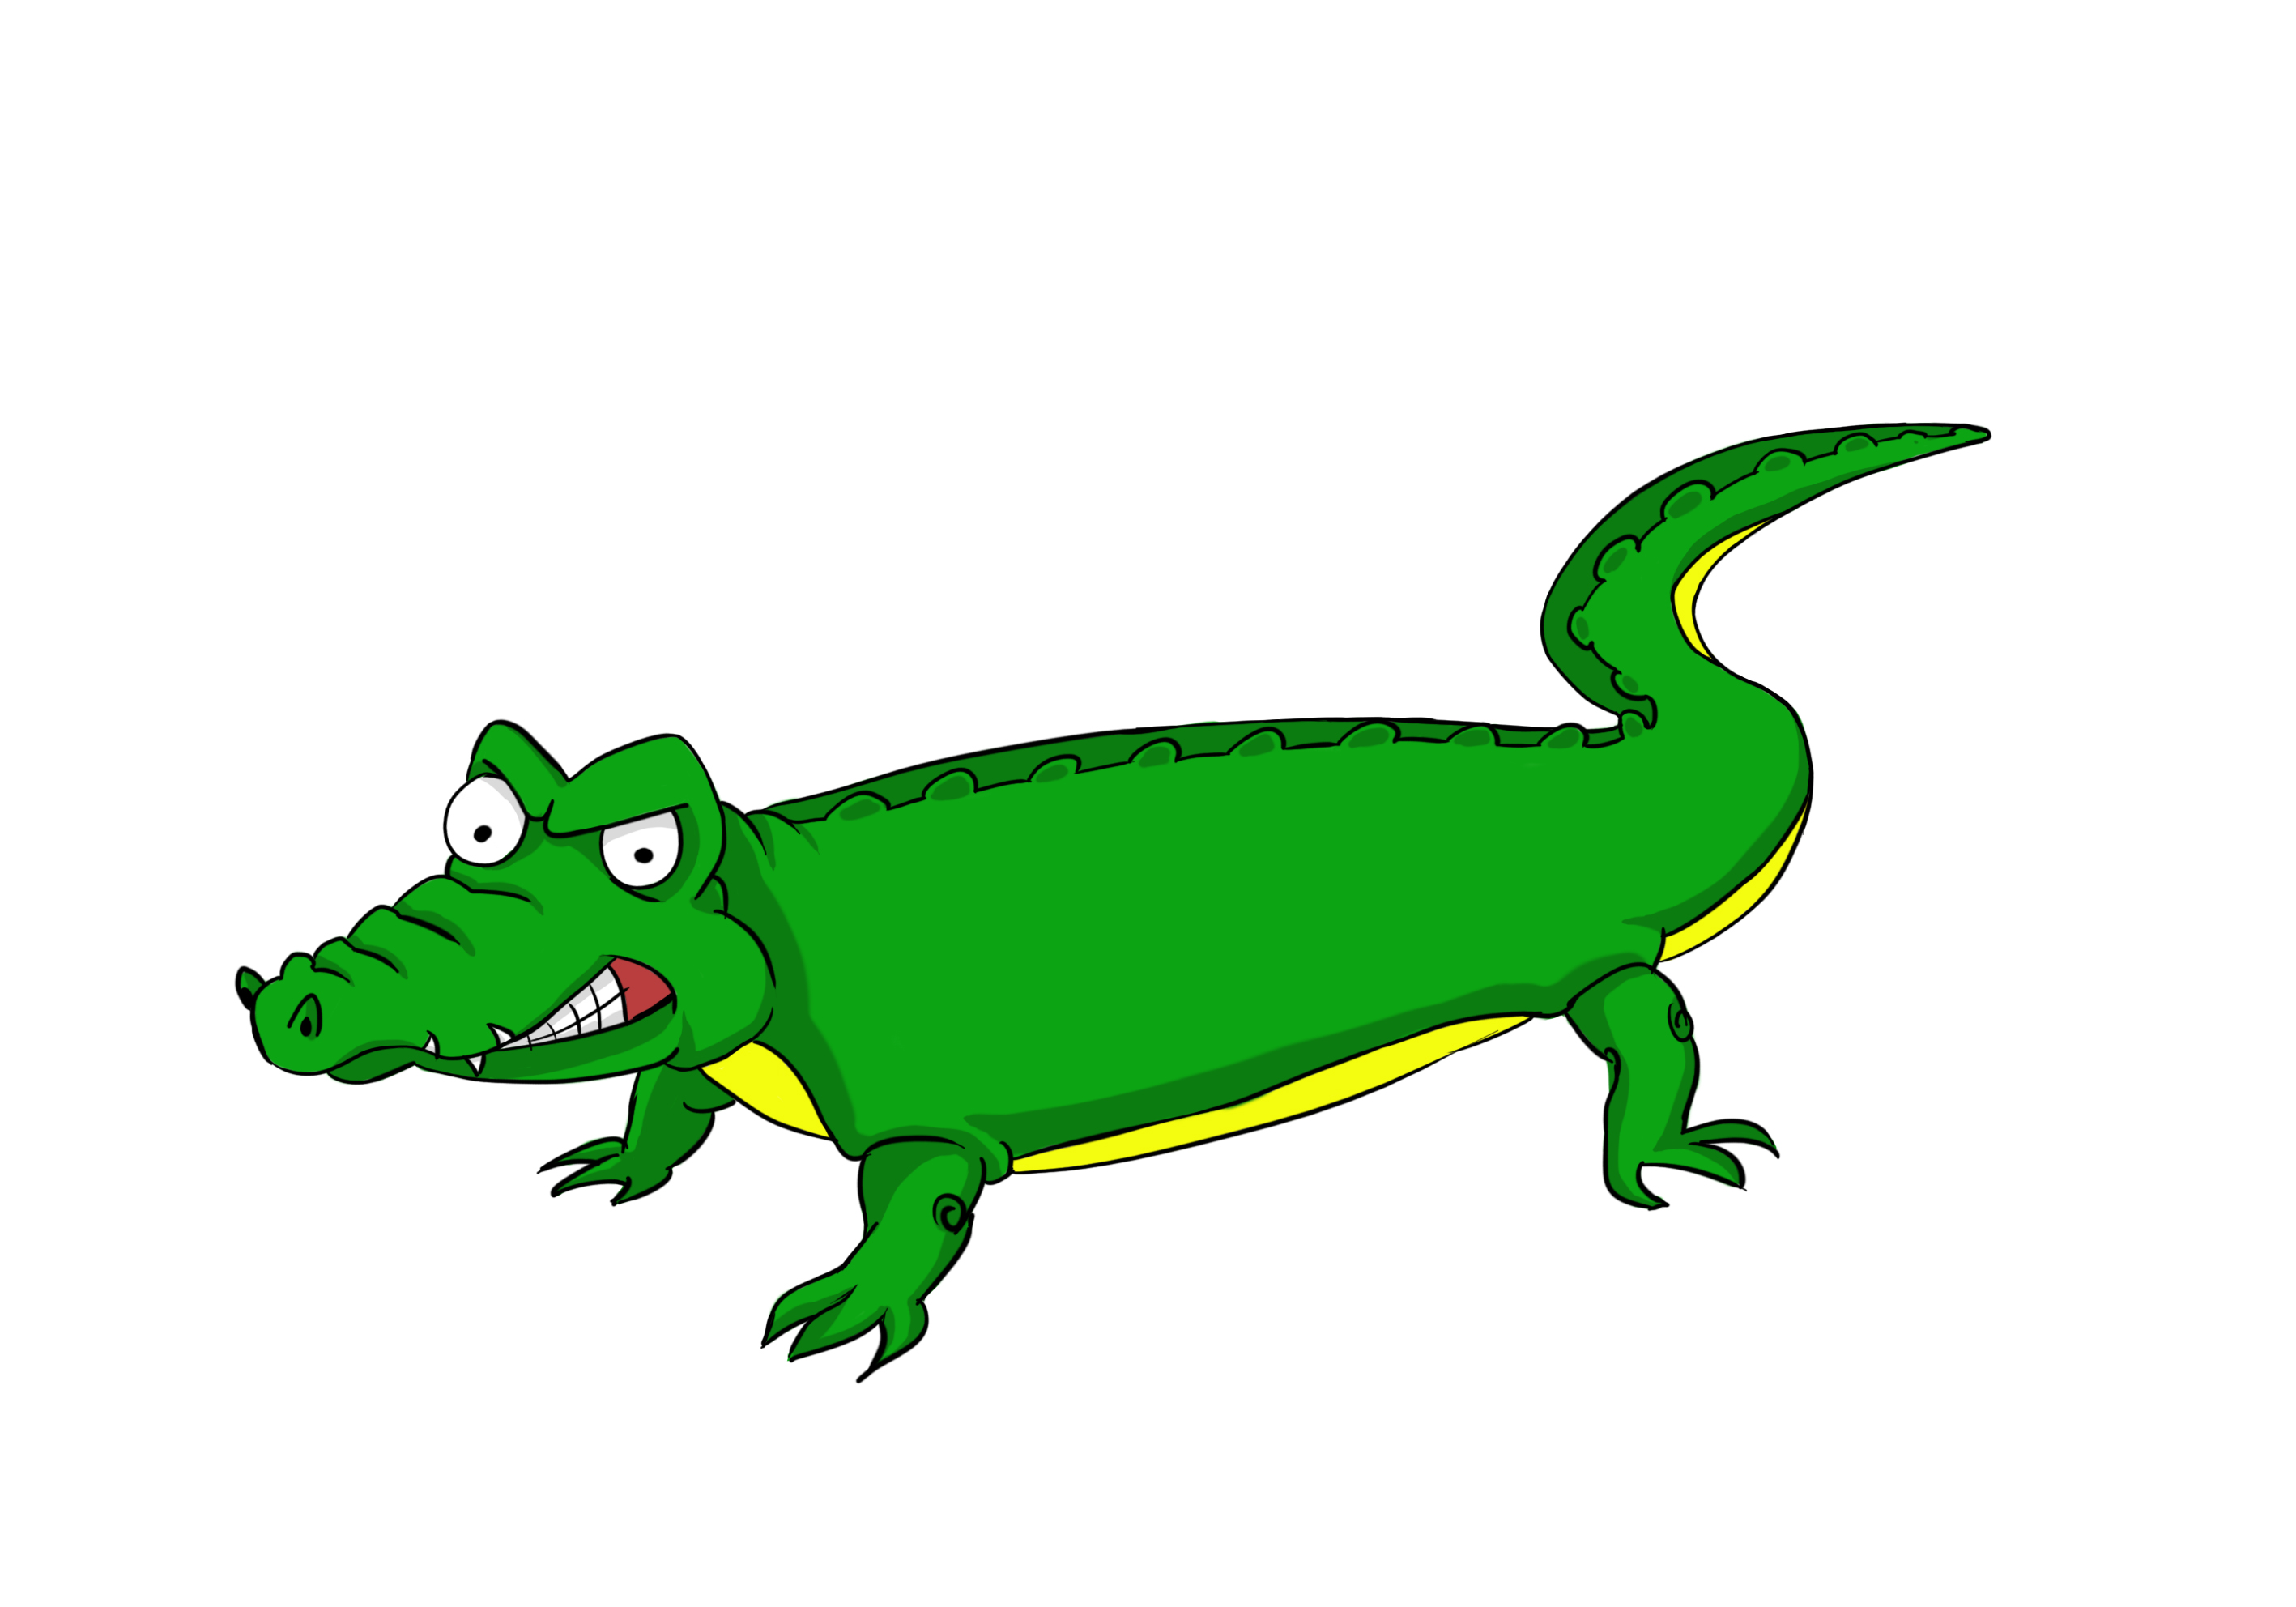 Gator clipart cajun, Gator cajun Transparent FREE for download on  WebStockReview 2020